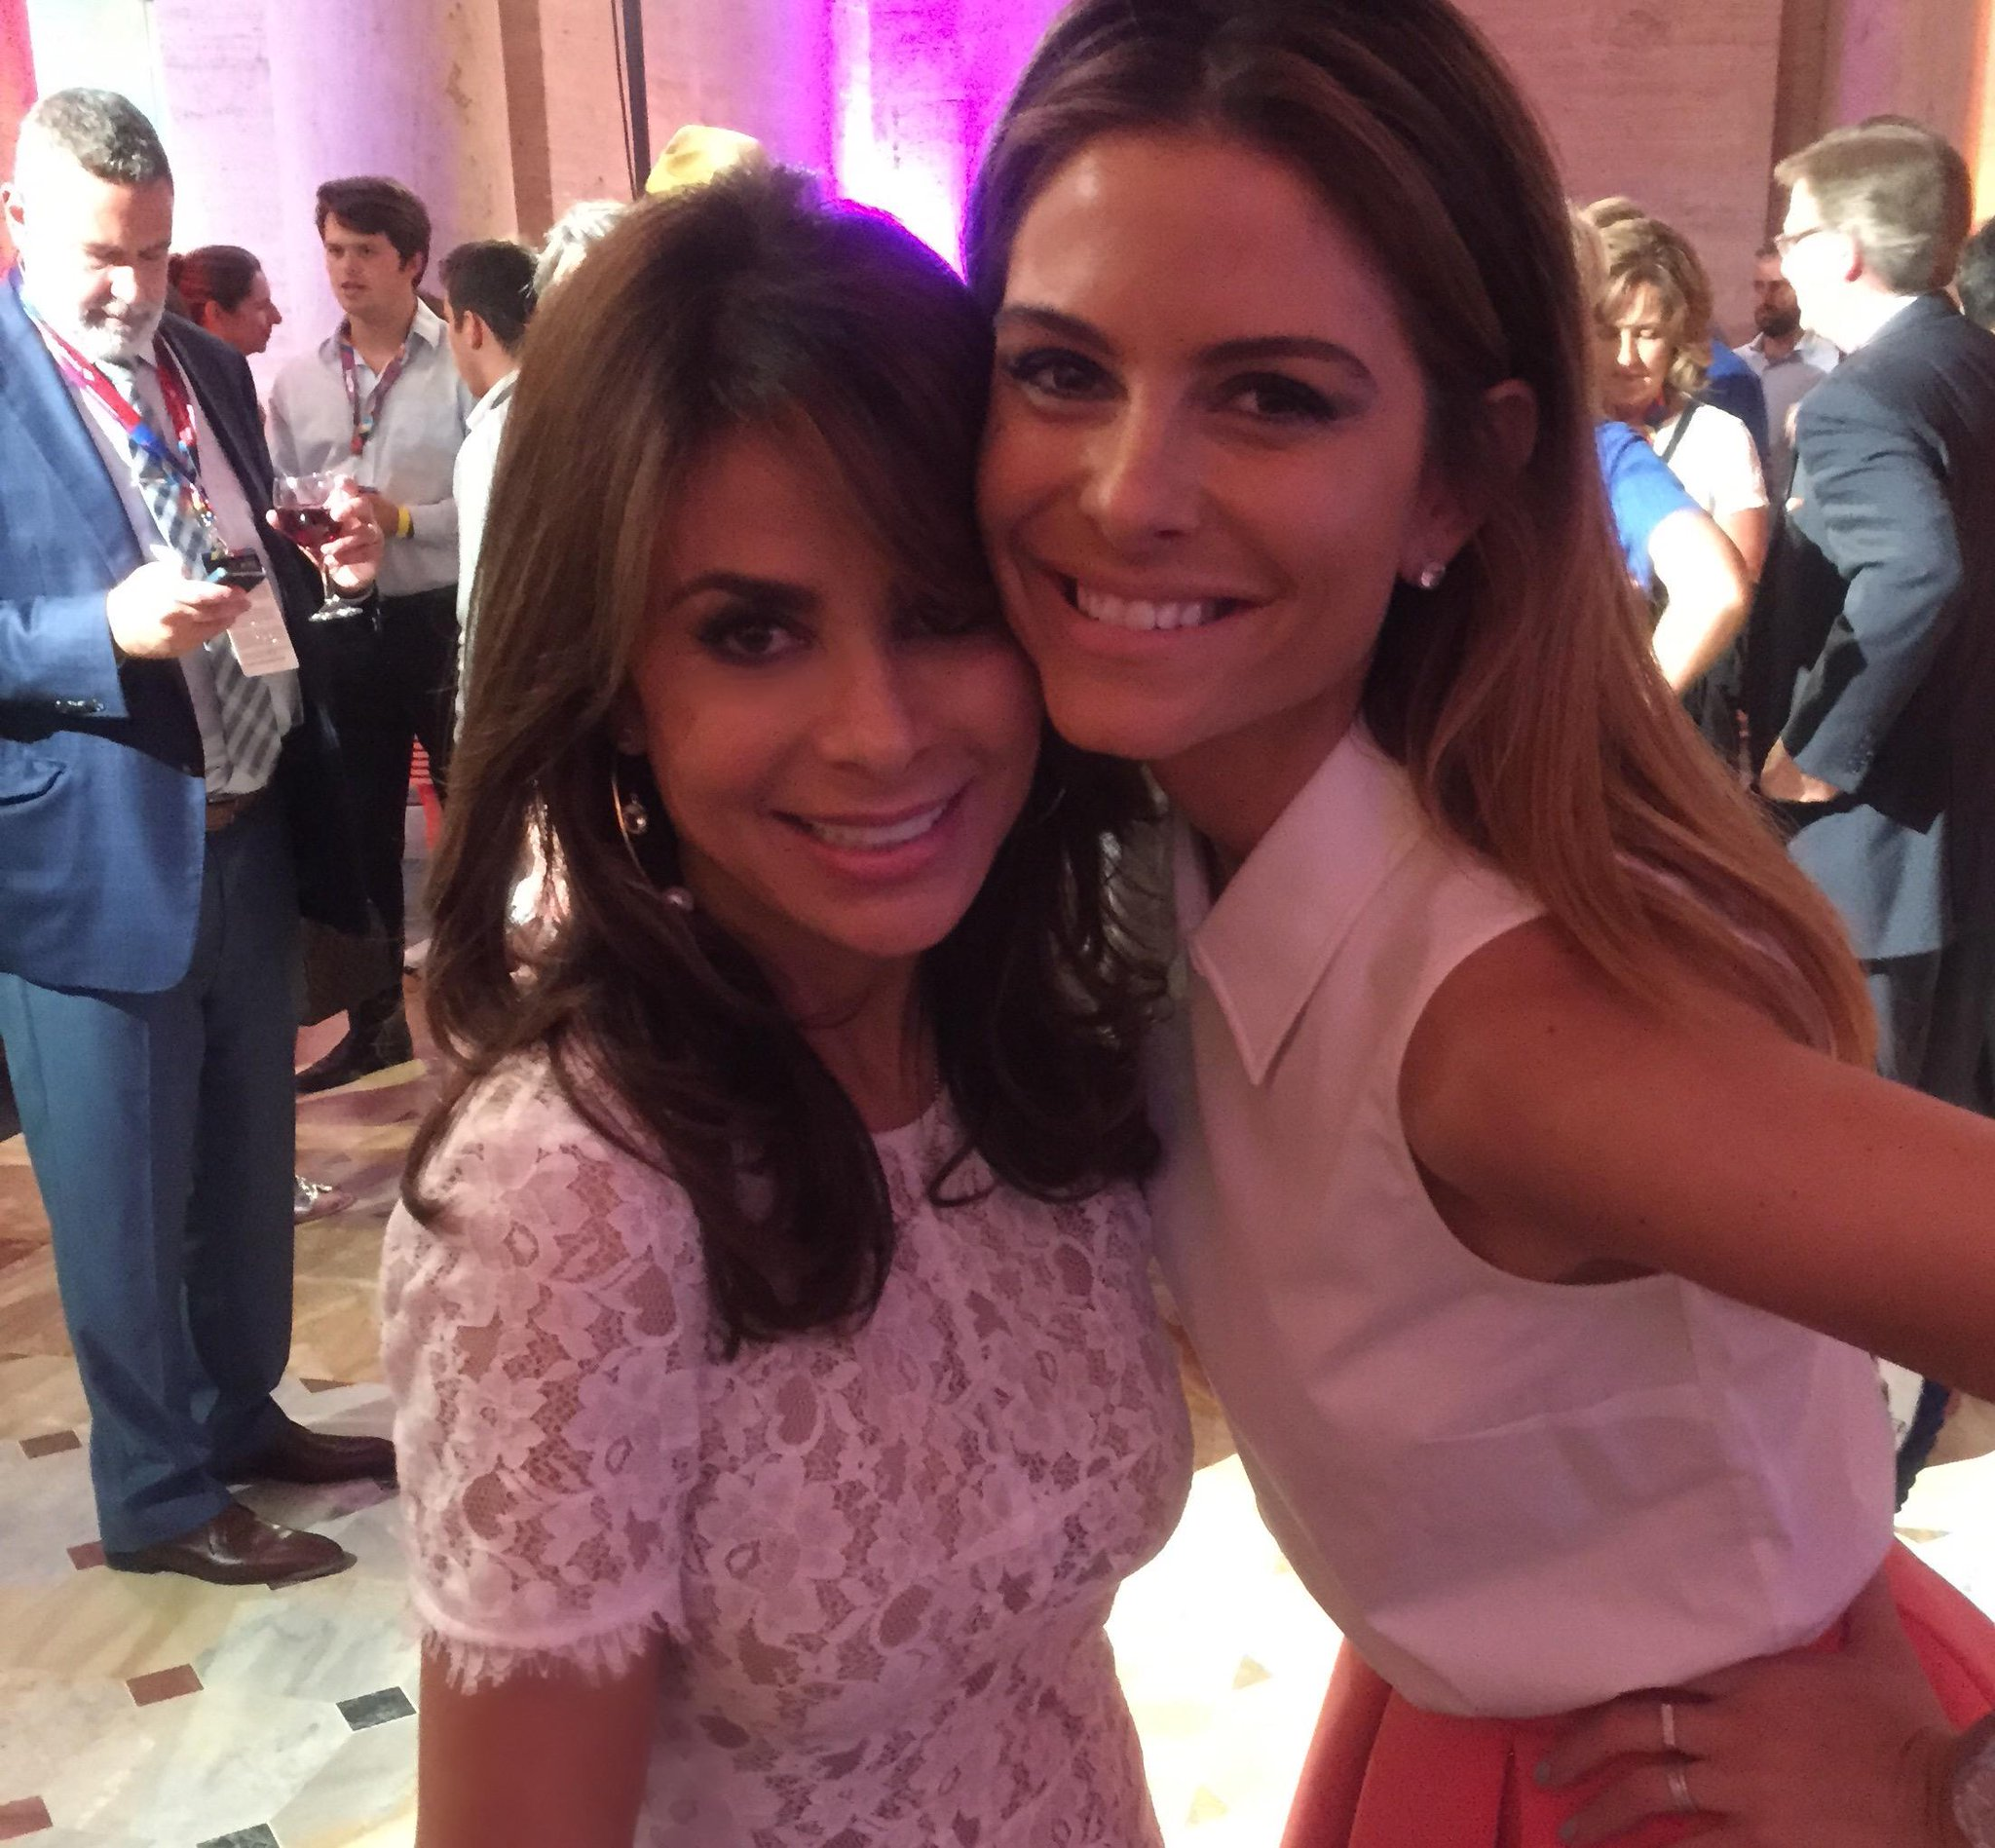 Me and @mariamenounos at @LA2015 :)) ...LOVED being at @SpecialOlympics Opening Ceremonies! xoP #ReachUpLA http://t.co/UVUtIAG7RD